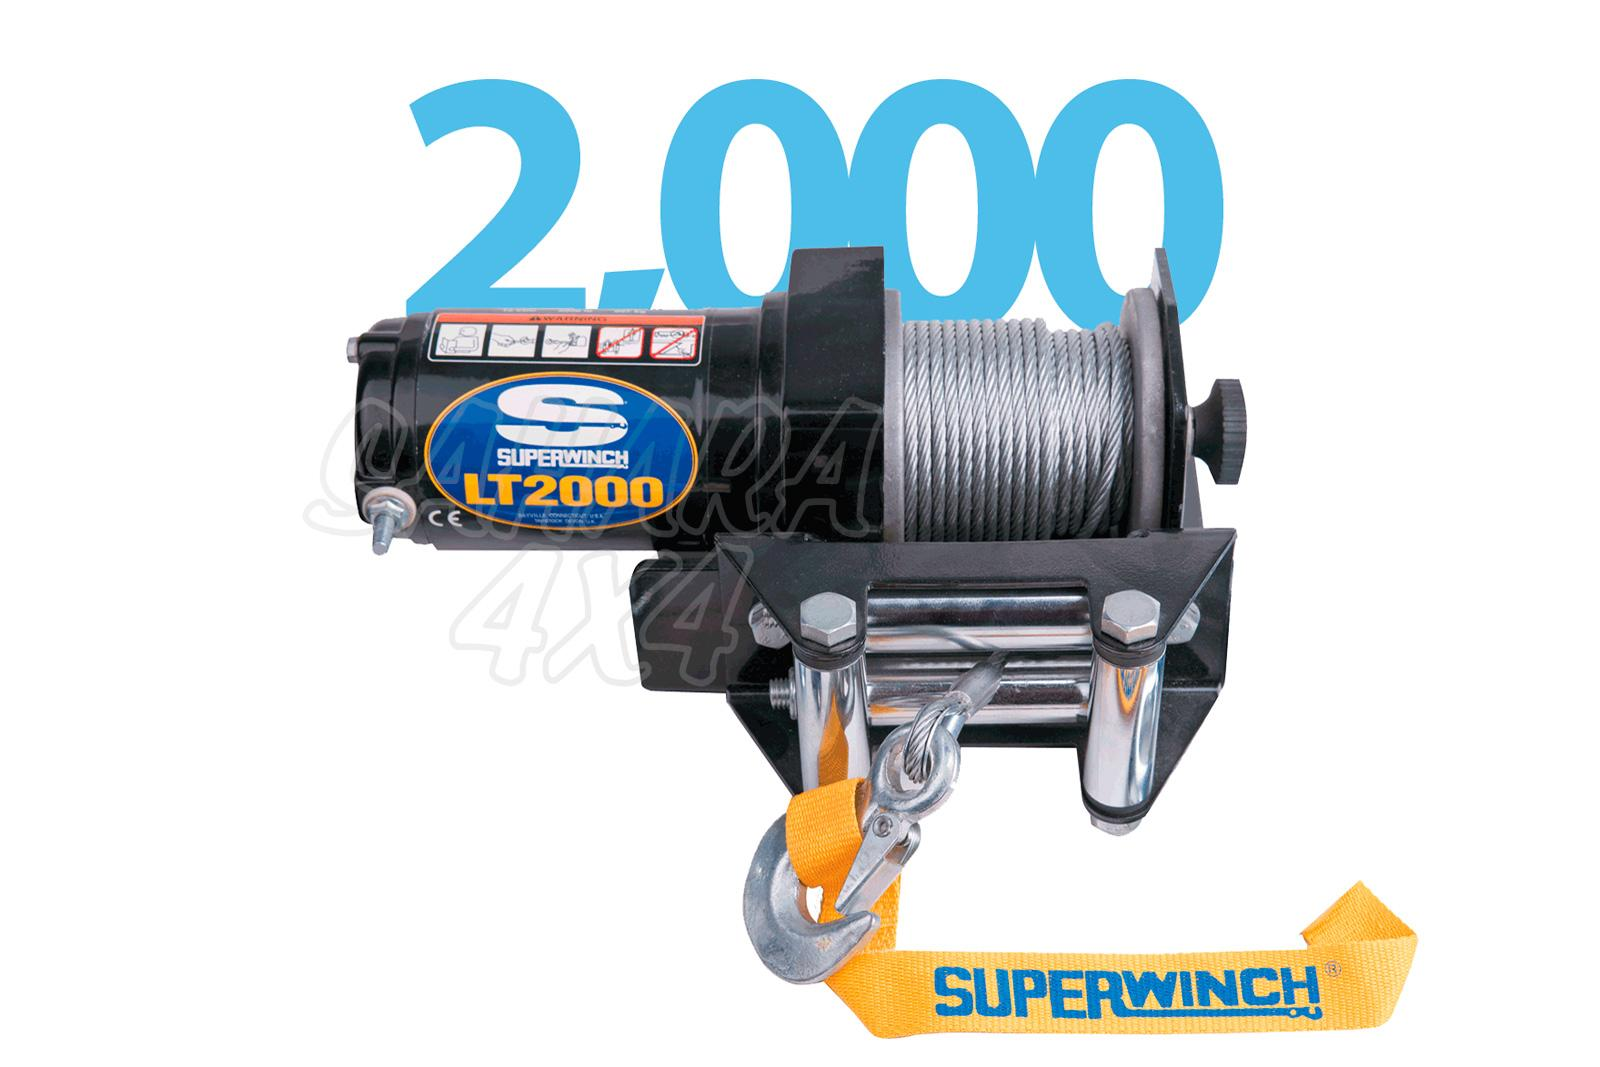 hight resolution of superwinch lt2000 atv 907kg electric winch 12v